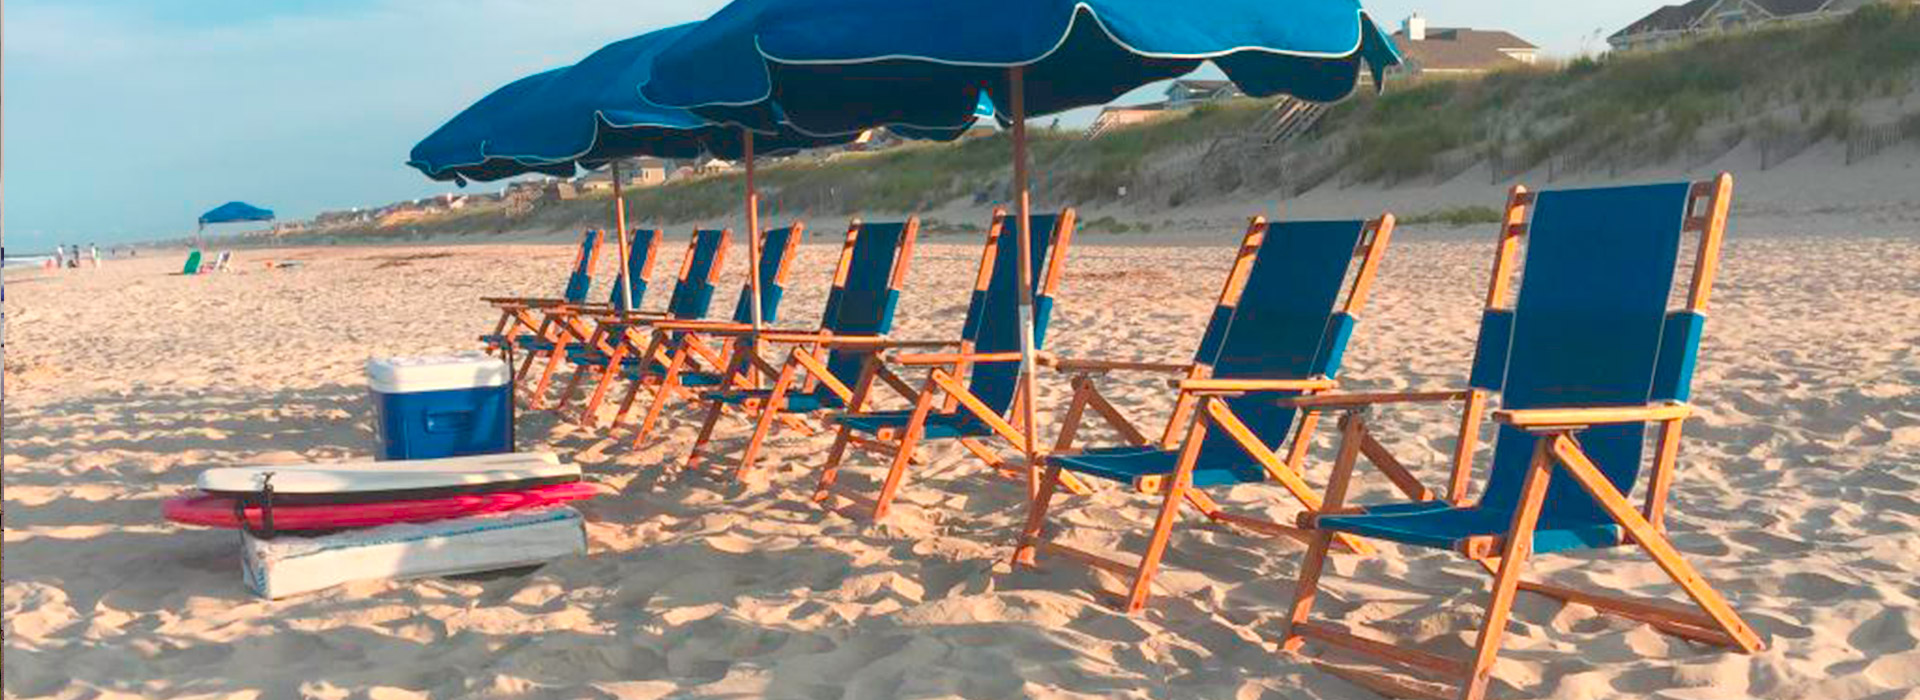 obx chairs and umbrellas